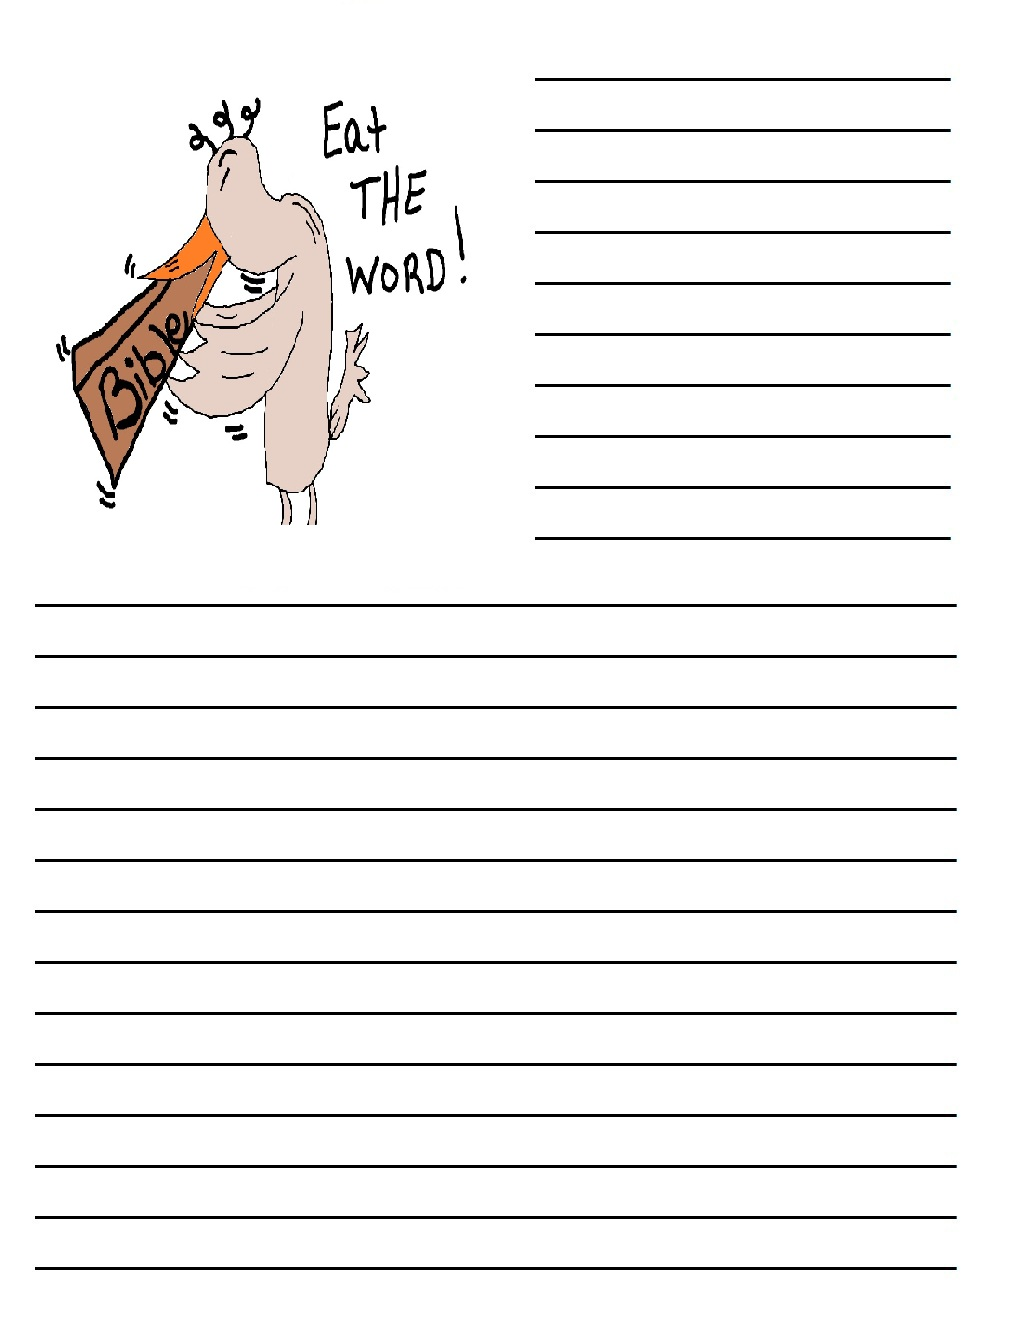 writeing paper Free, printable lined writing paper for kids over 1,500 ela worksheet lesson activities for class or home use click to get started.